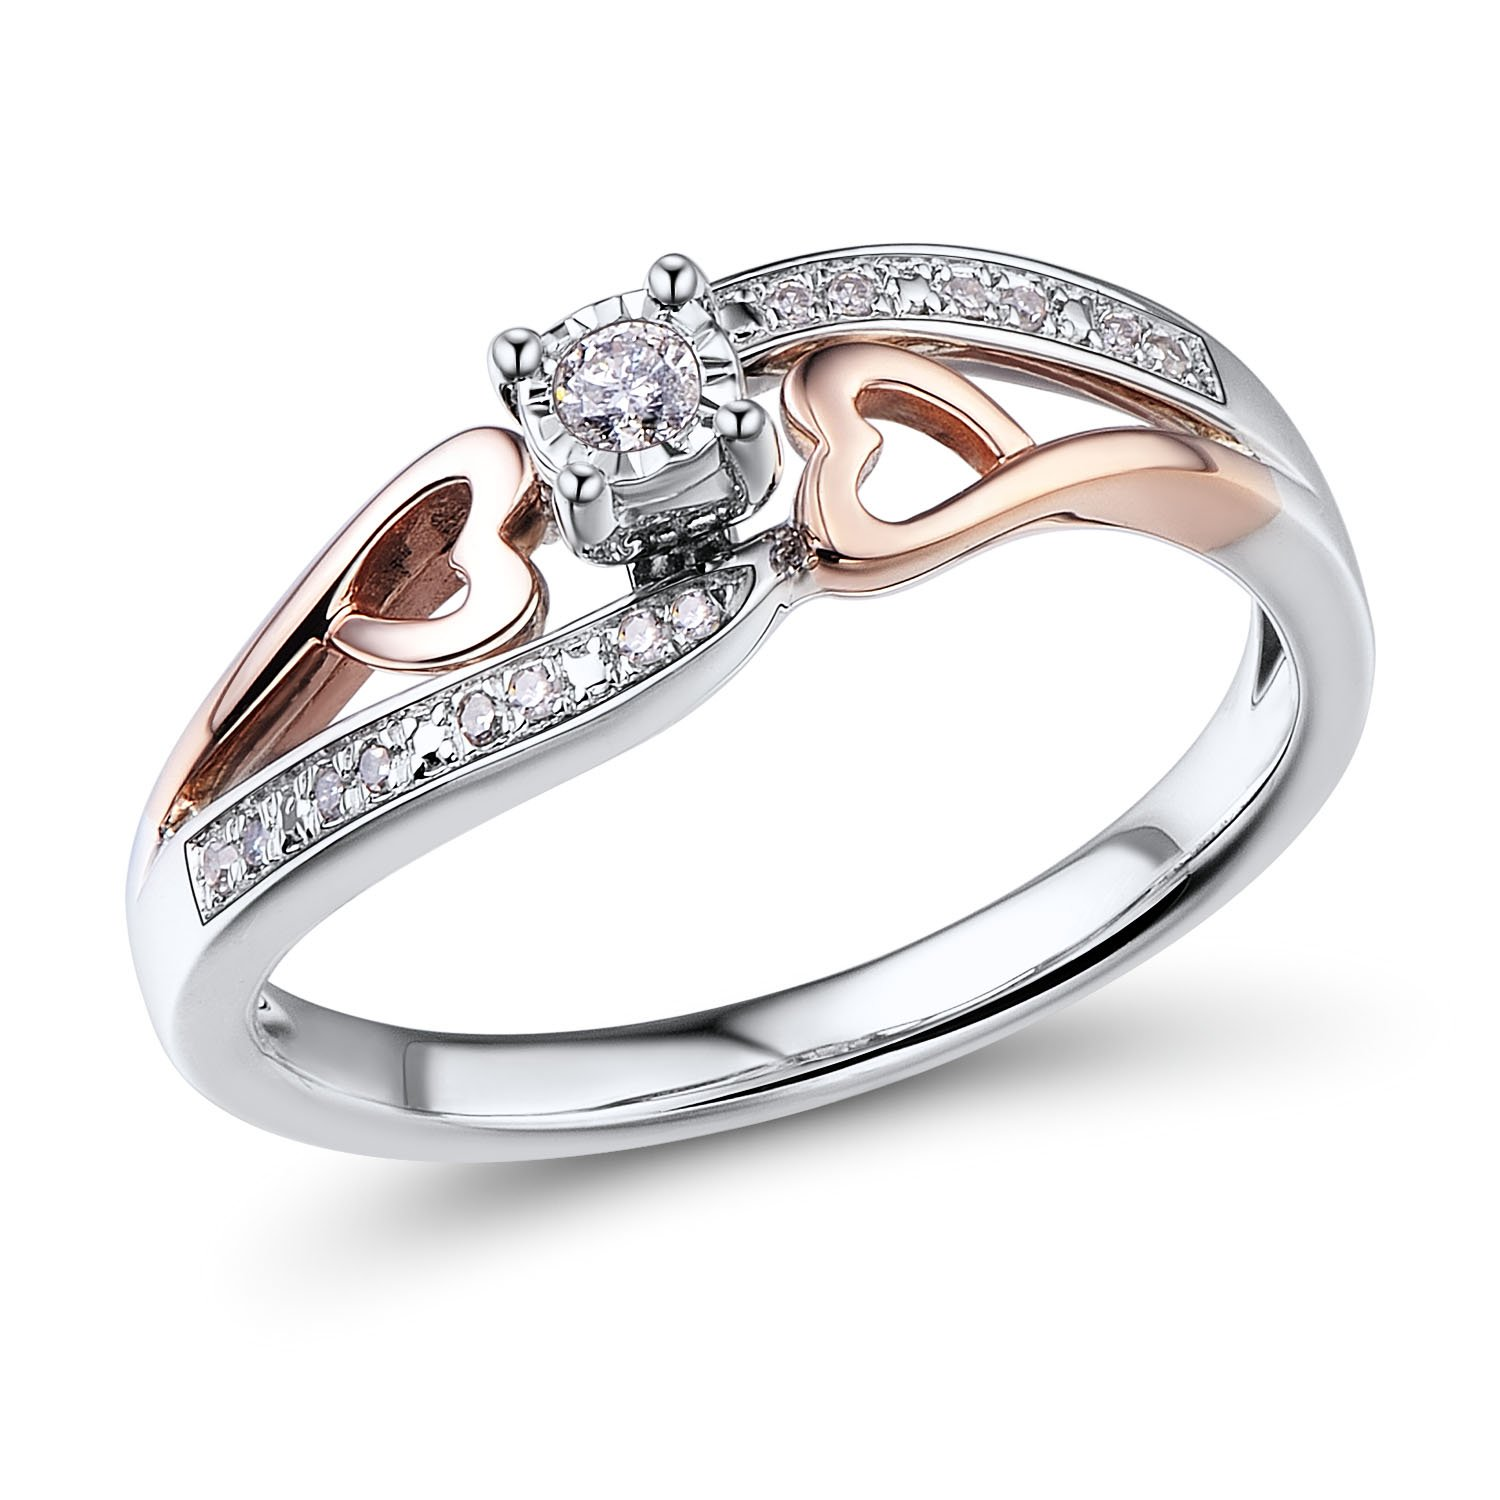 Diamond Promise Ring in 10k Rose Gold and Sterling Silver 1//10 cttw